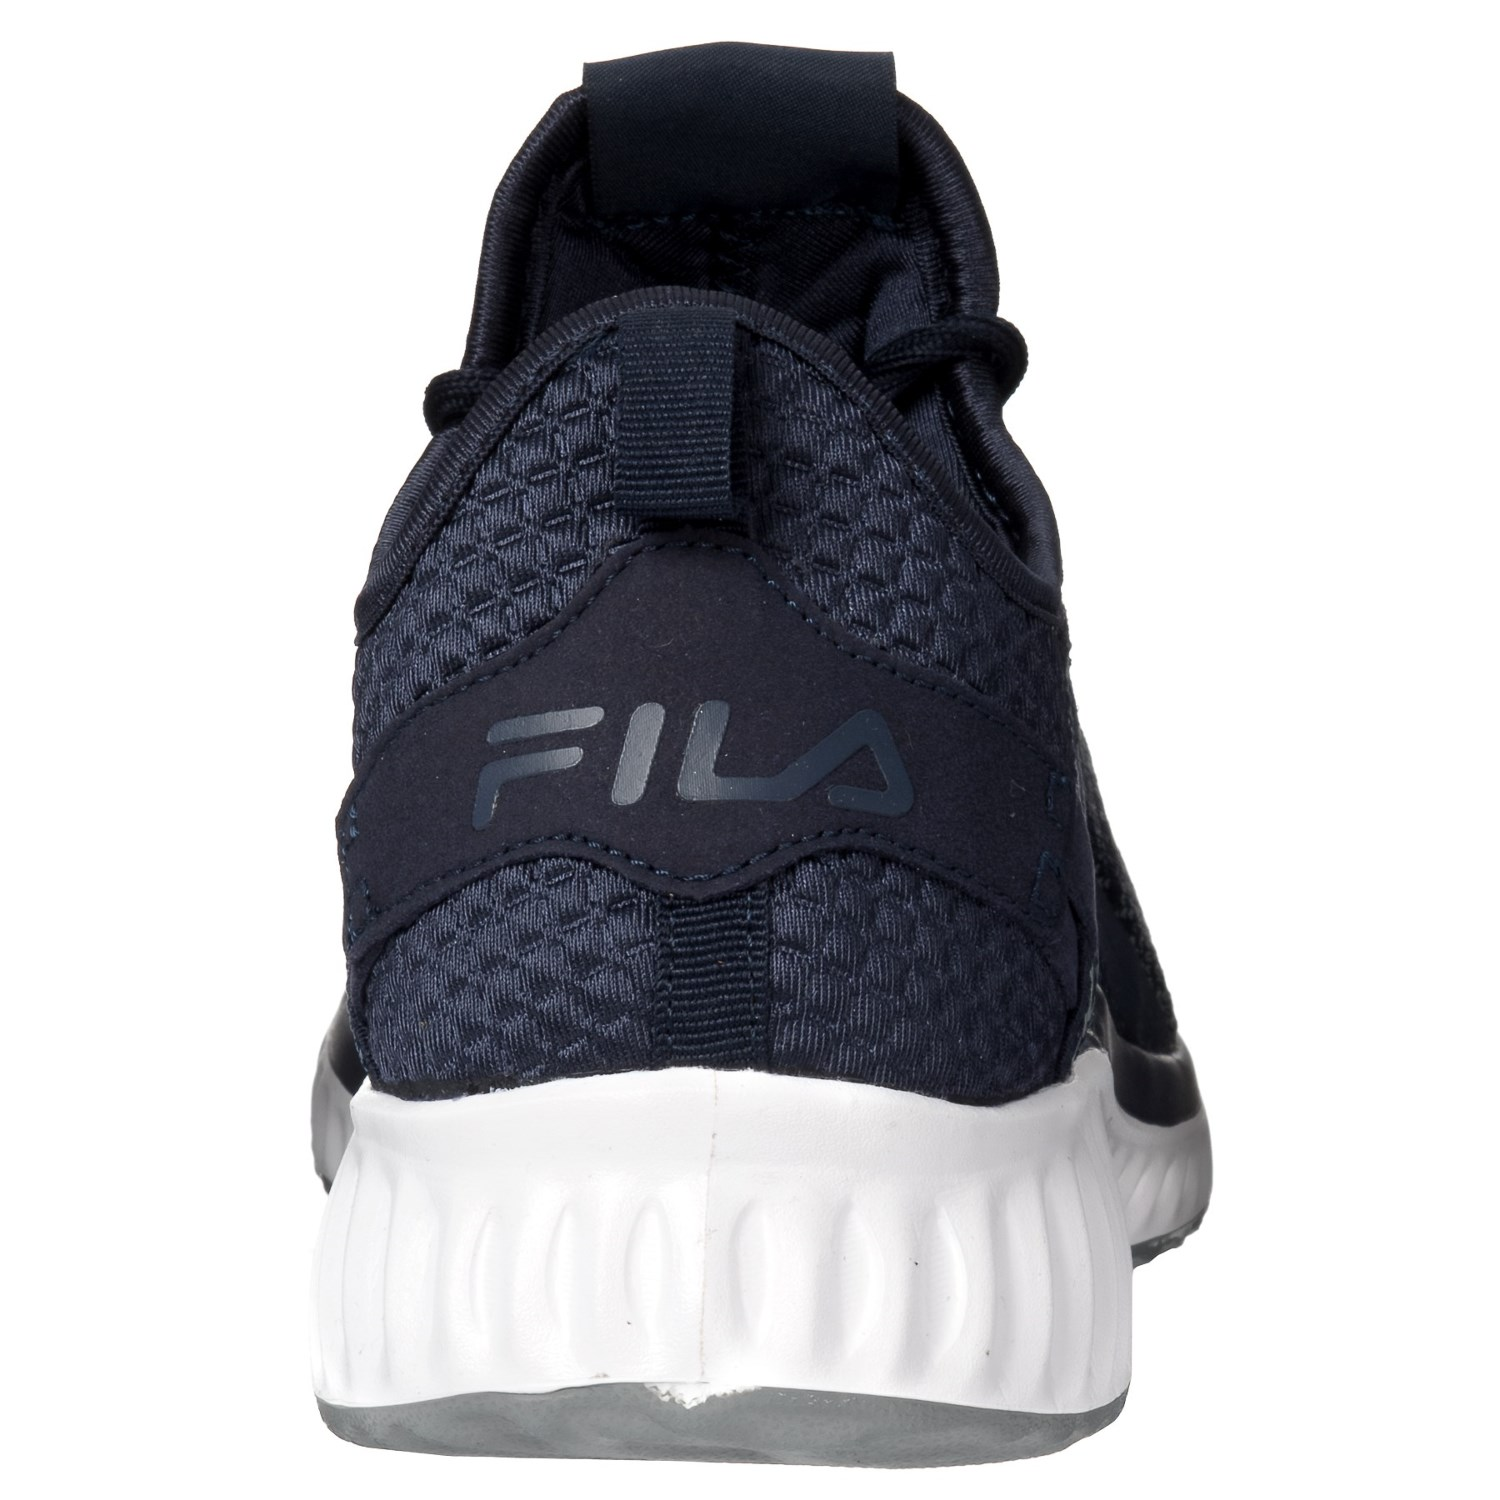 845064a9754b Fila Memory Realmspeed Running Shoe (For Men) - Save 50%